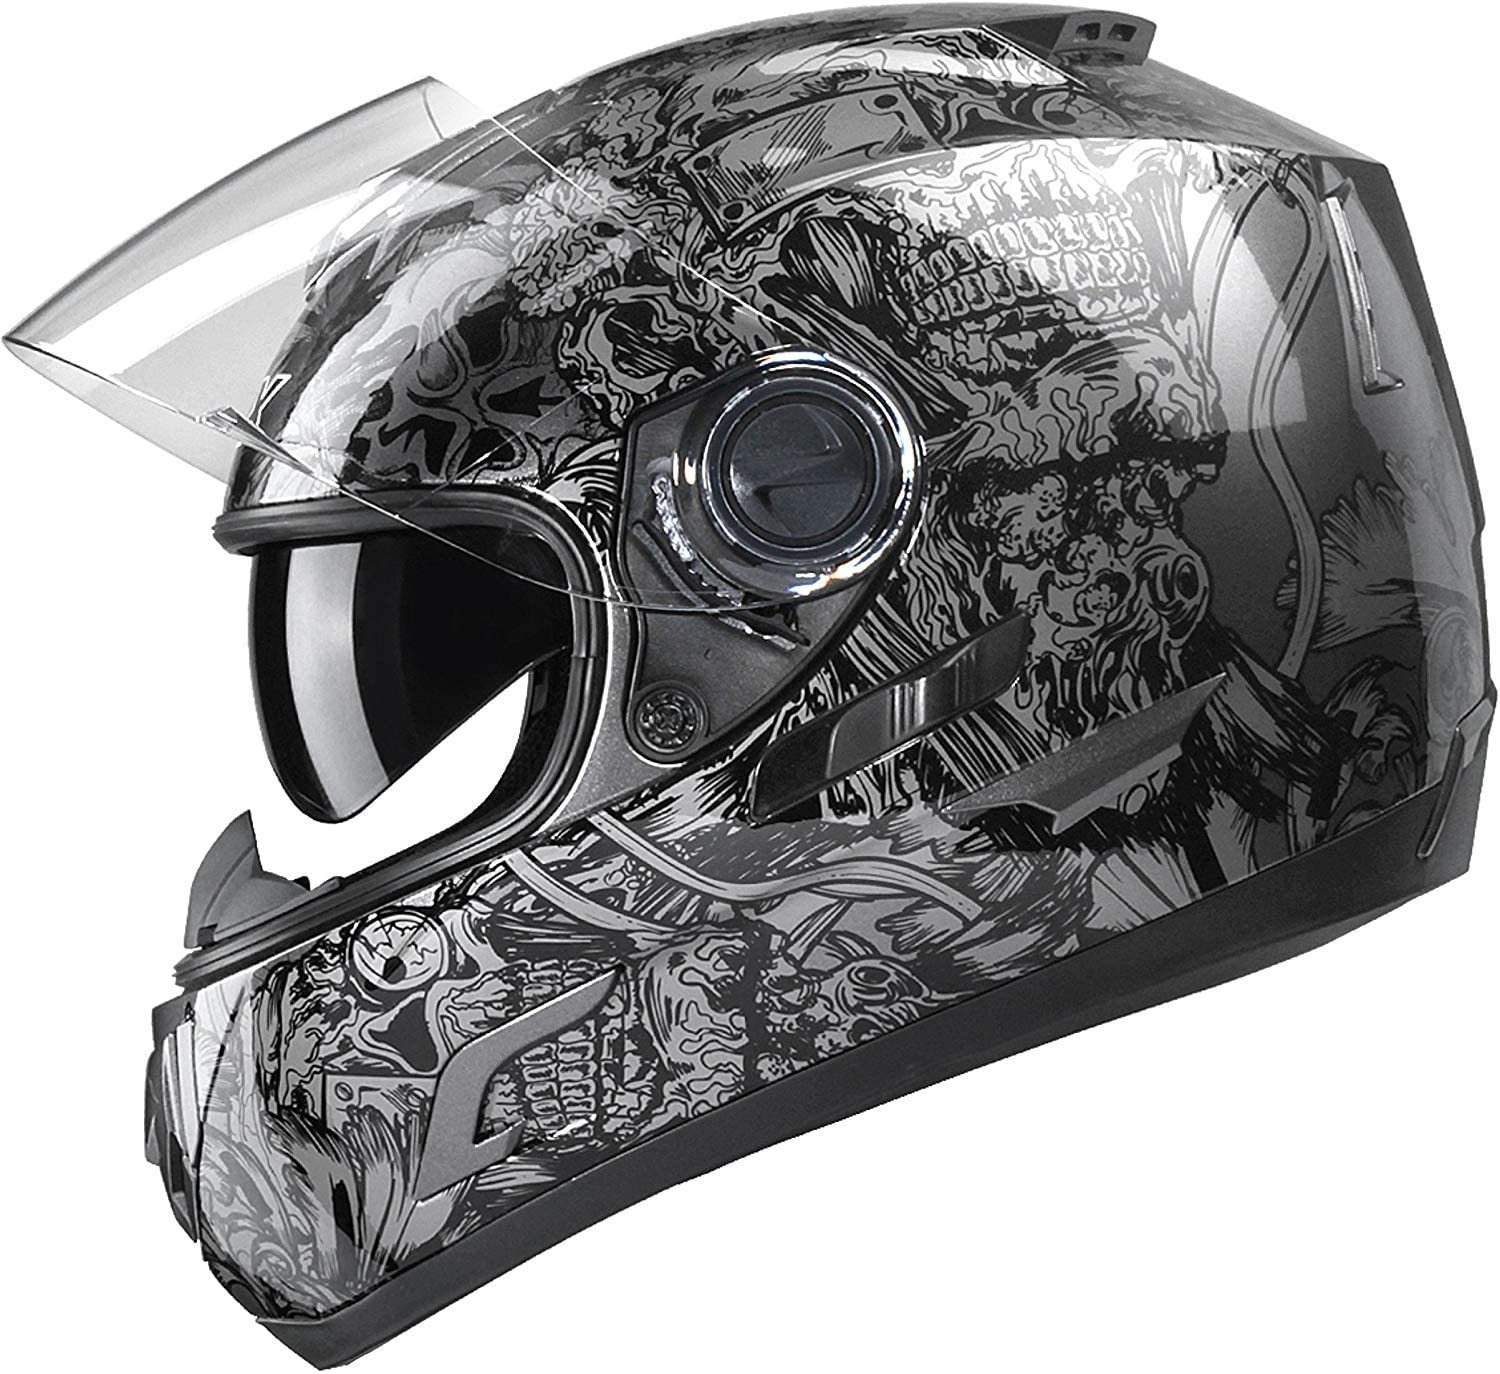 GLX Unisex-Adult GX15 Lightweight Full Face Motorcycle Street Bike Helmet with Internal Sun Visor DOT Approved (Skull, Large)